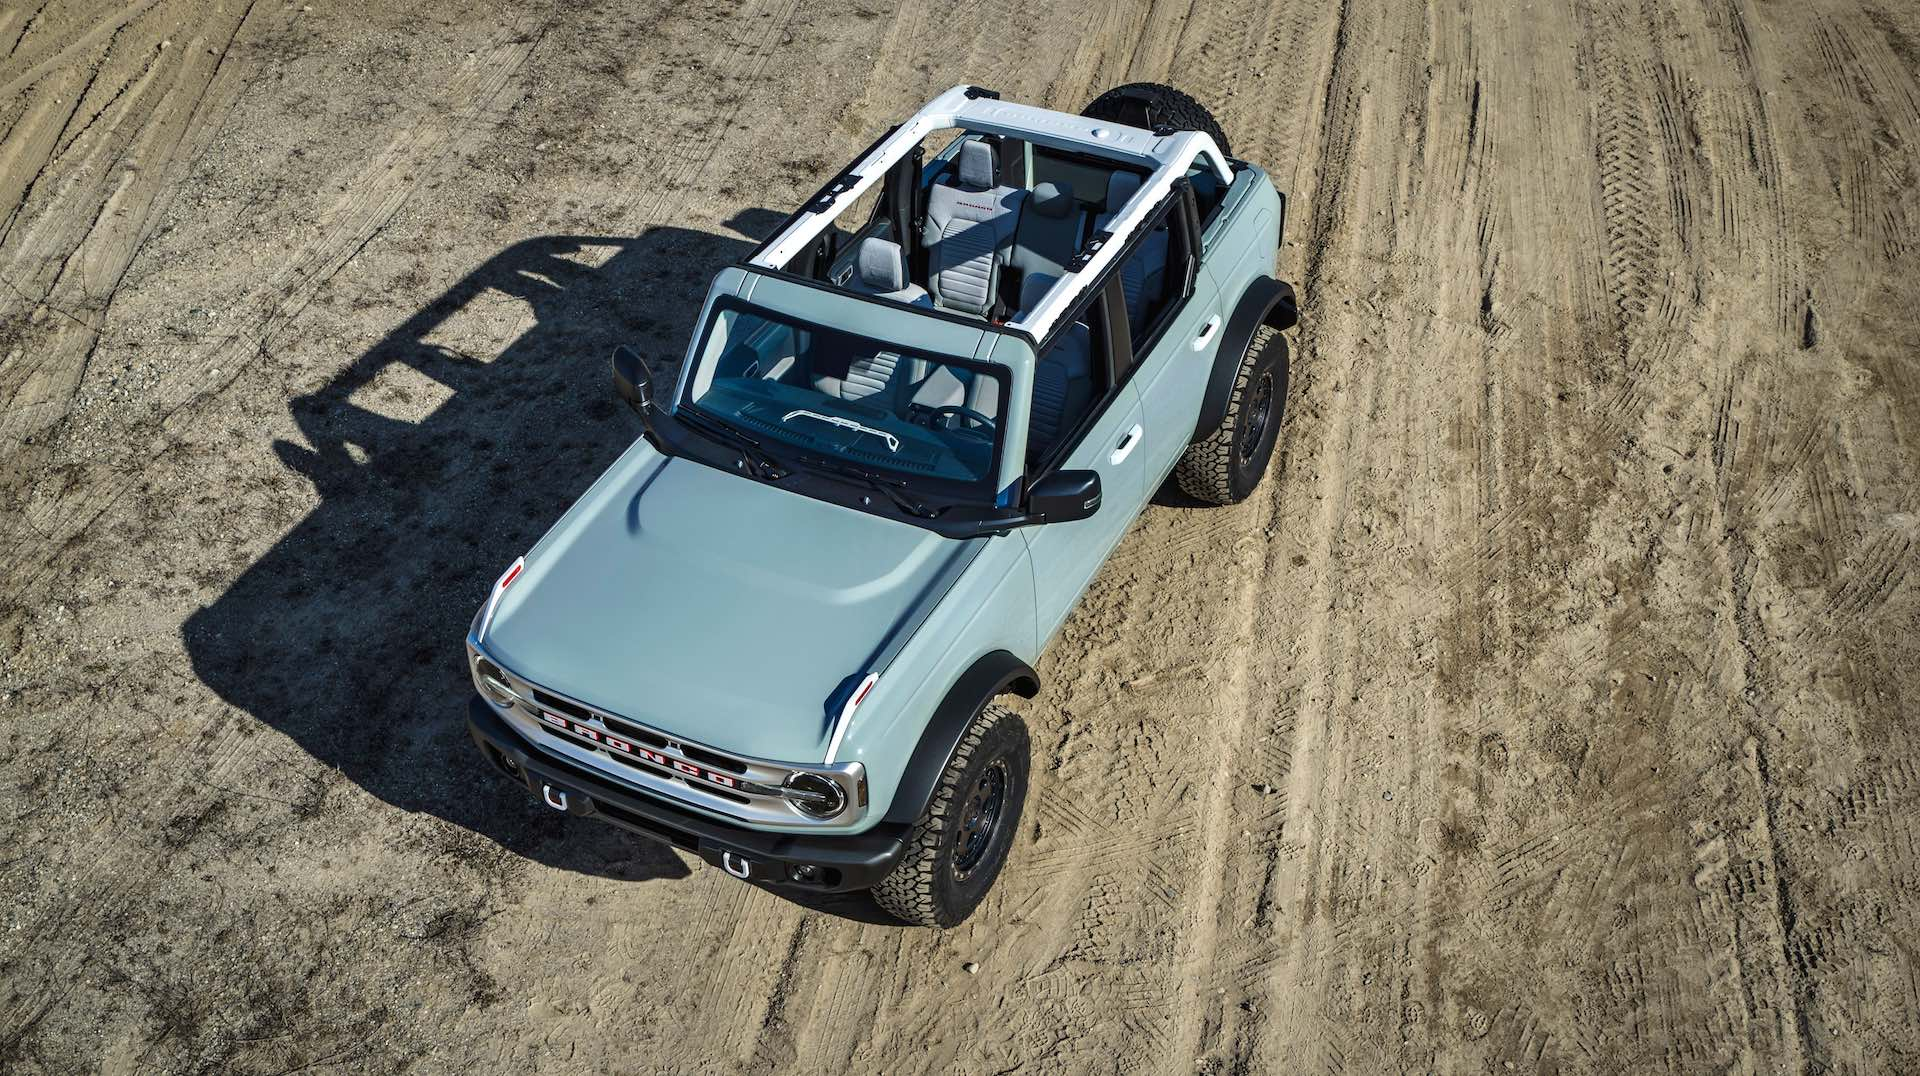 The 2021 Ford Bronco Four-Door